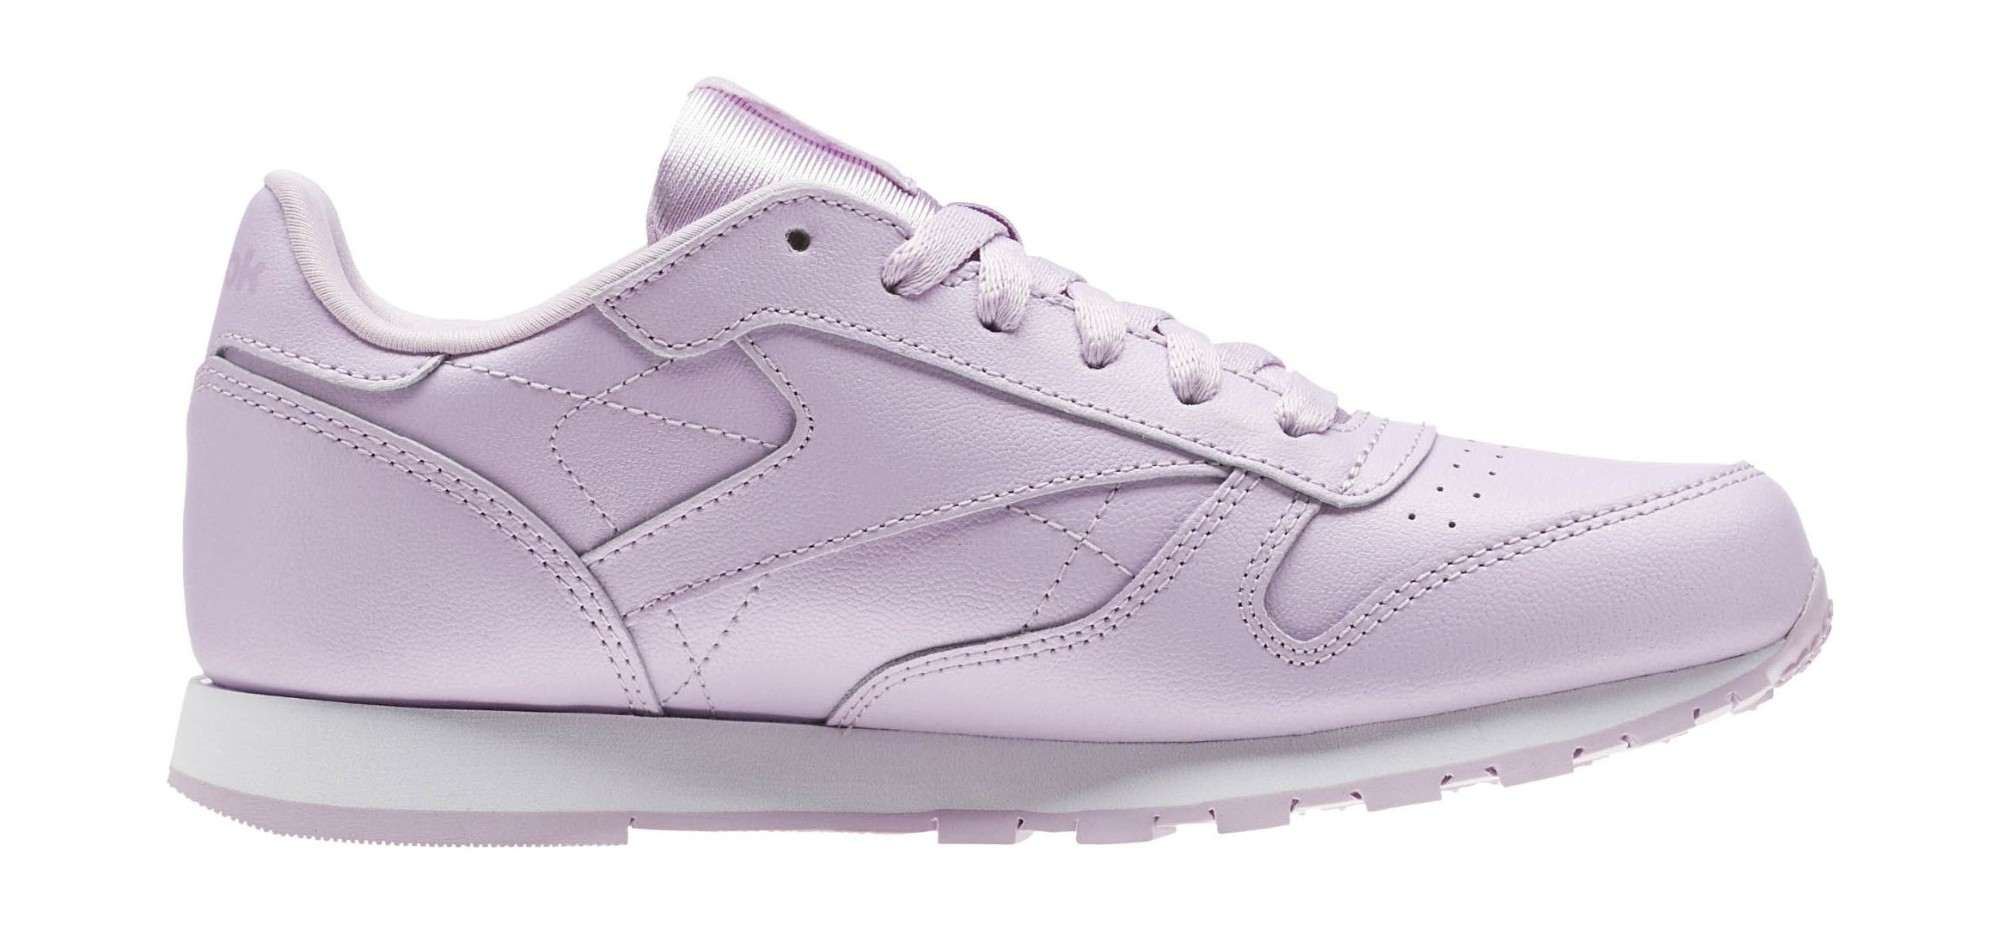 Previous. Reebok Classic Leather Metallic ... 156862bd4